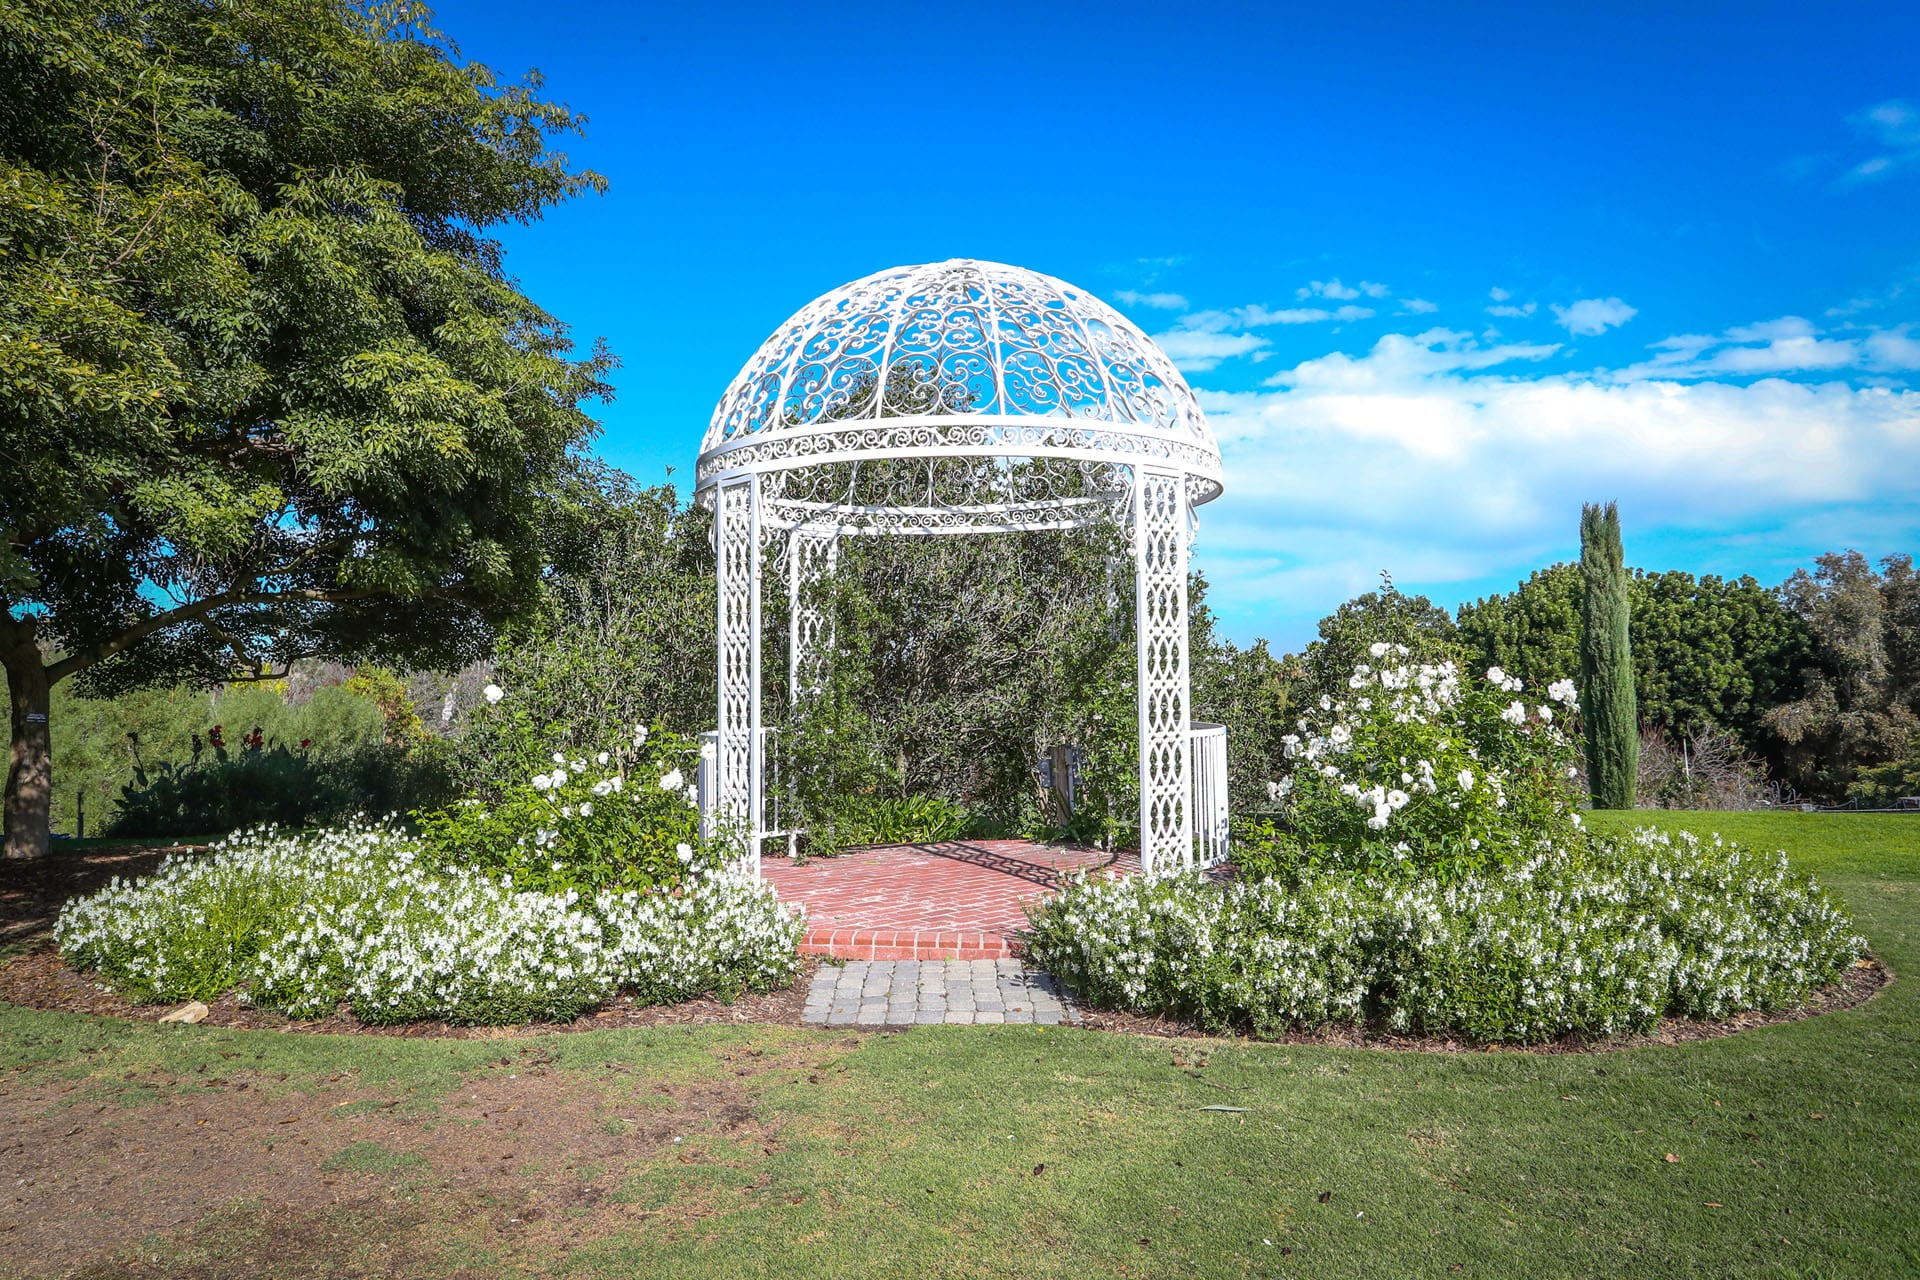 Gazebo in a garden area